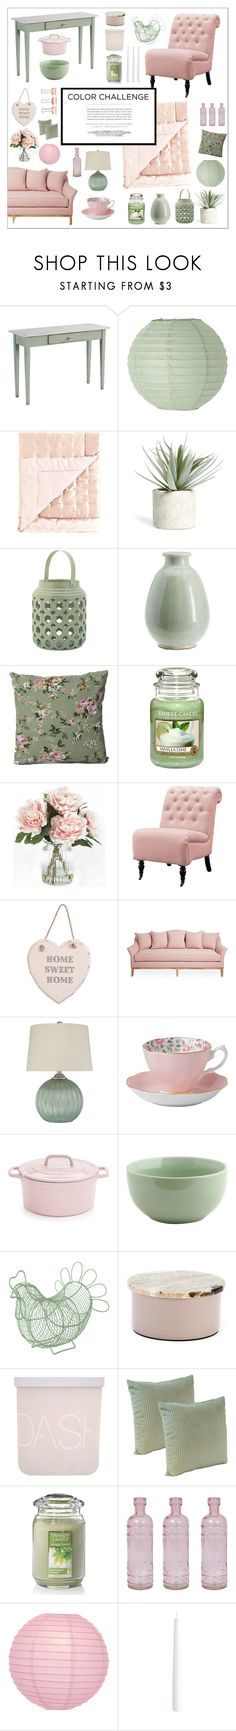 """""""Colour challenge   green & blush"""" by atlanta-j ❤ liked on Polyvore featuring interior, interiors, interior design, home, home decor, interior decorating, DutchCrafters, Bloomingville, Allstate Floral and Pottery Barn"""